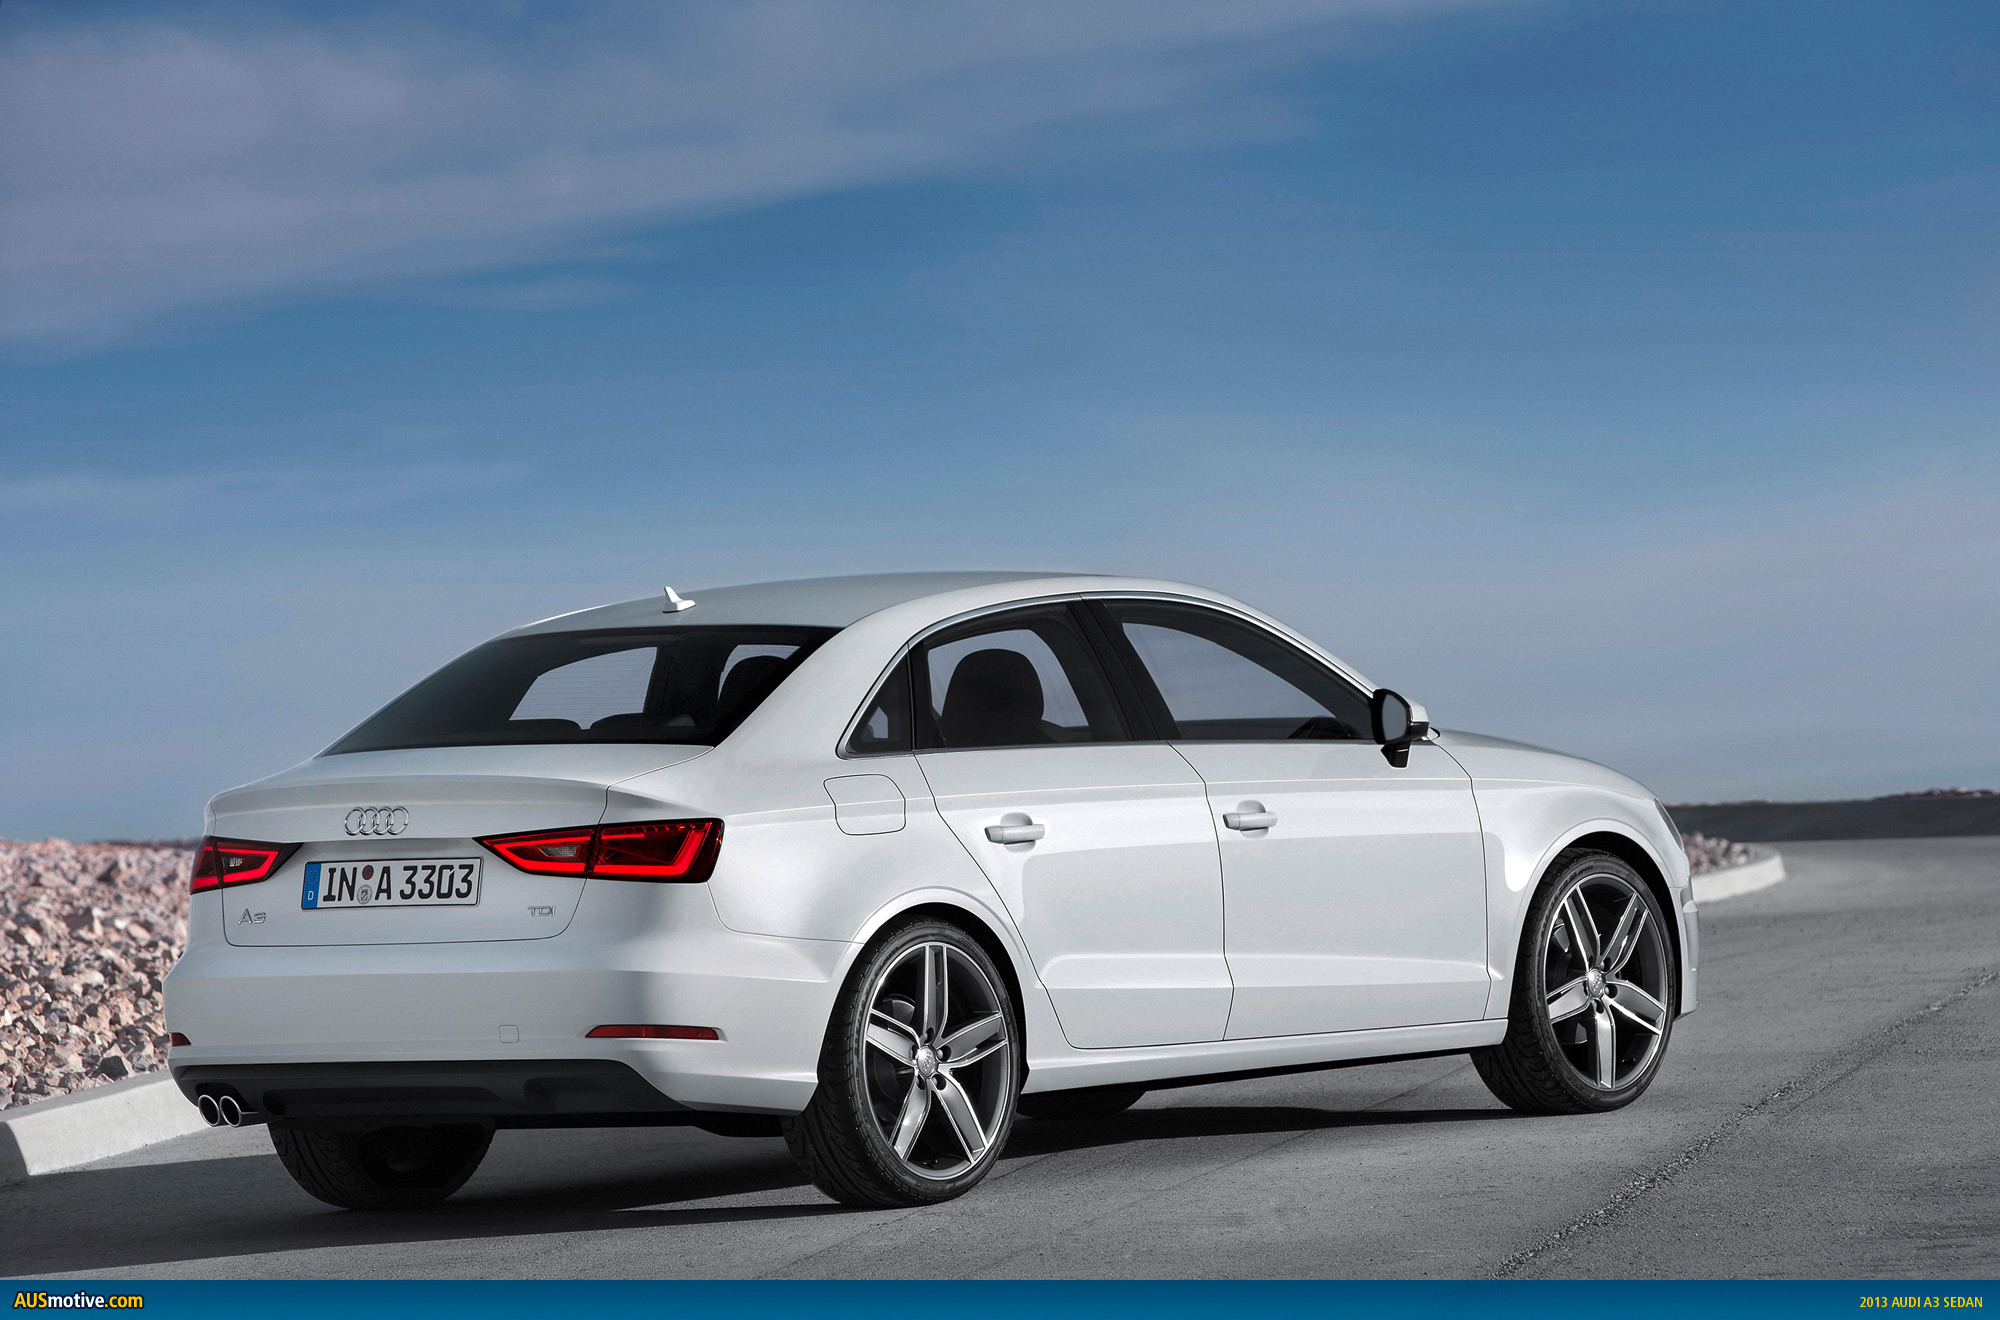 AUSmotive.com » New York 2013: Audi A3/S3 Sedan